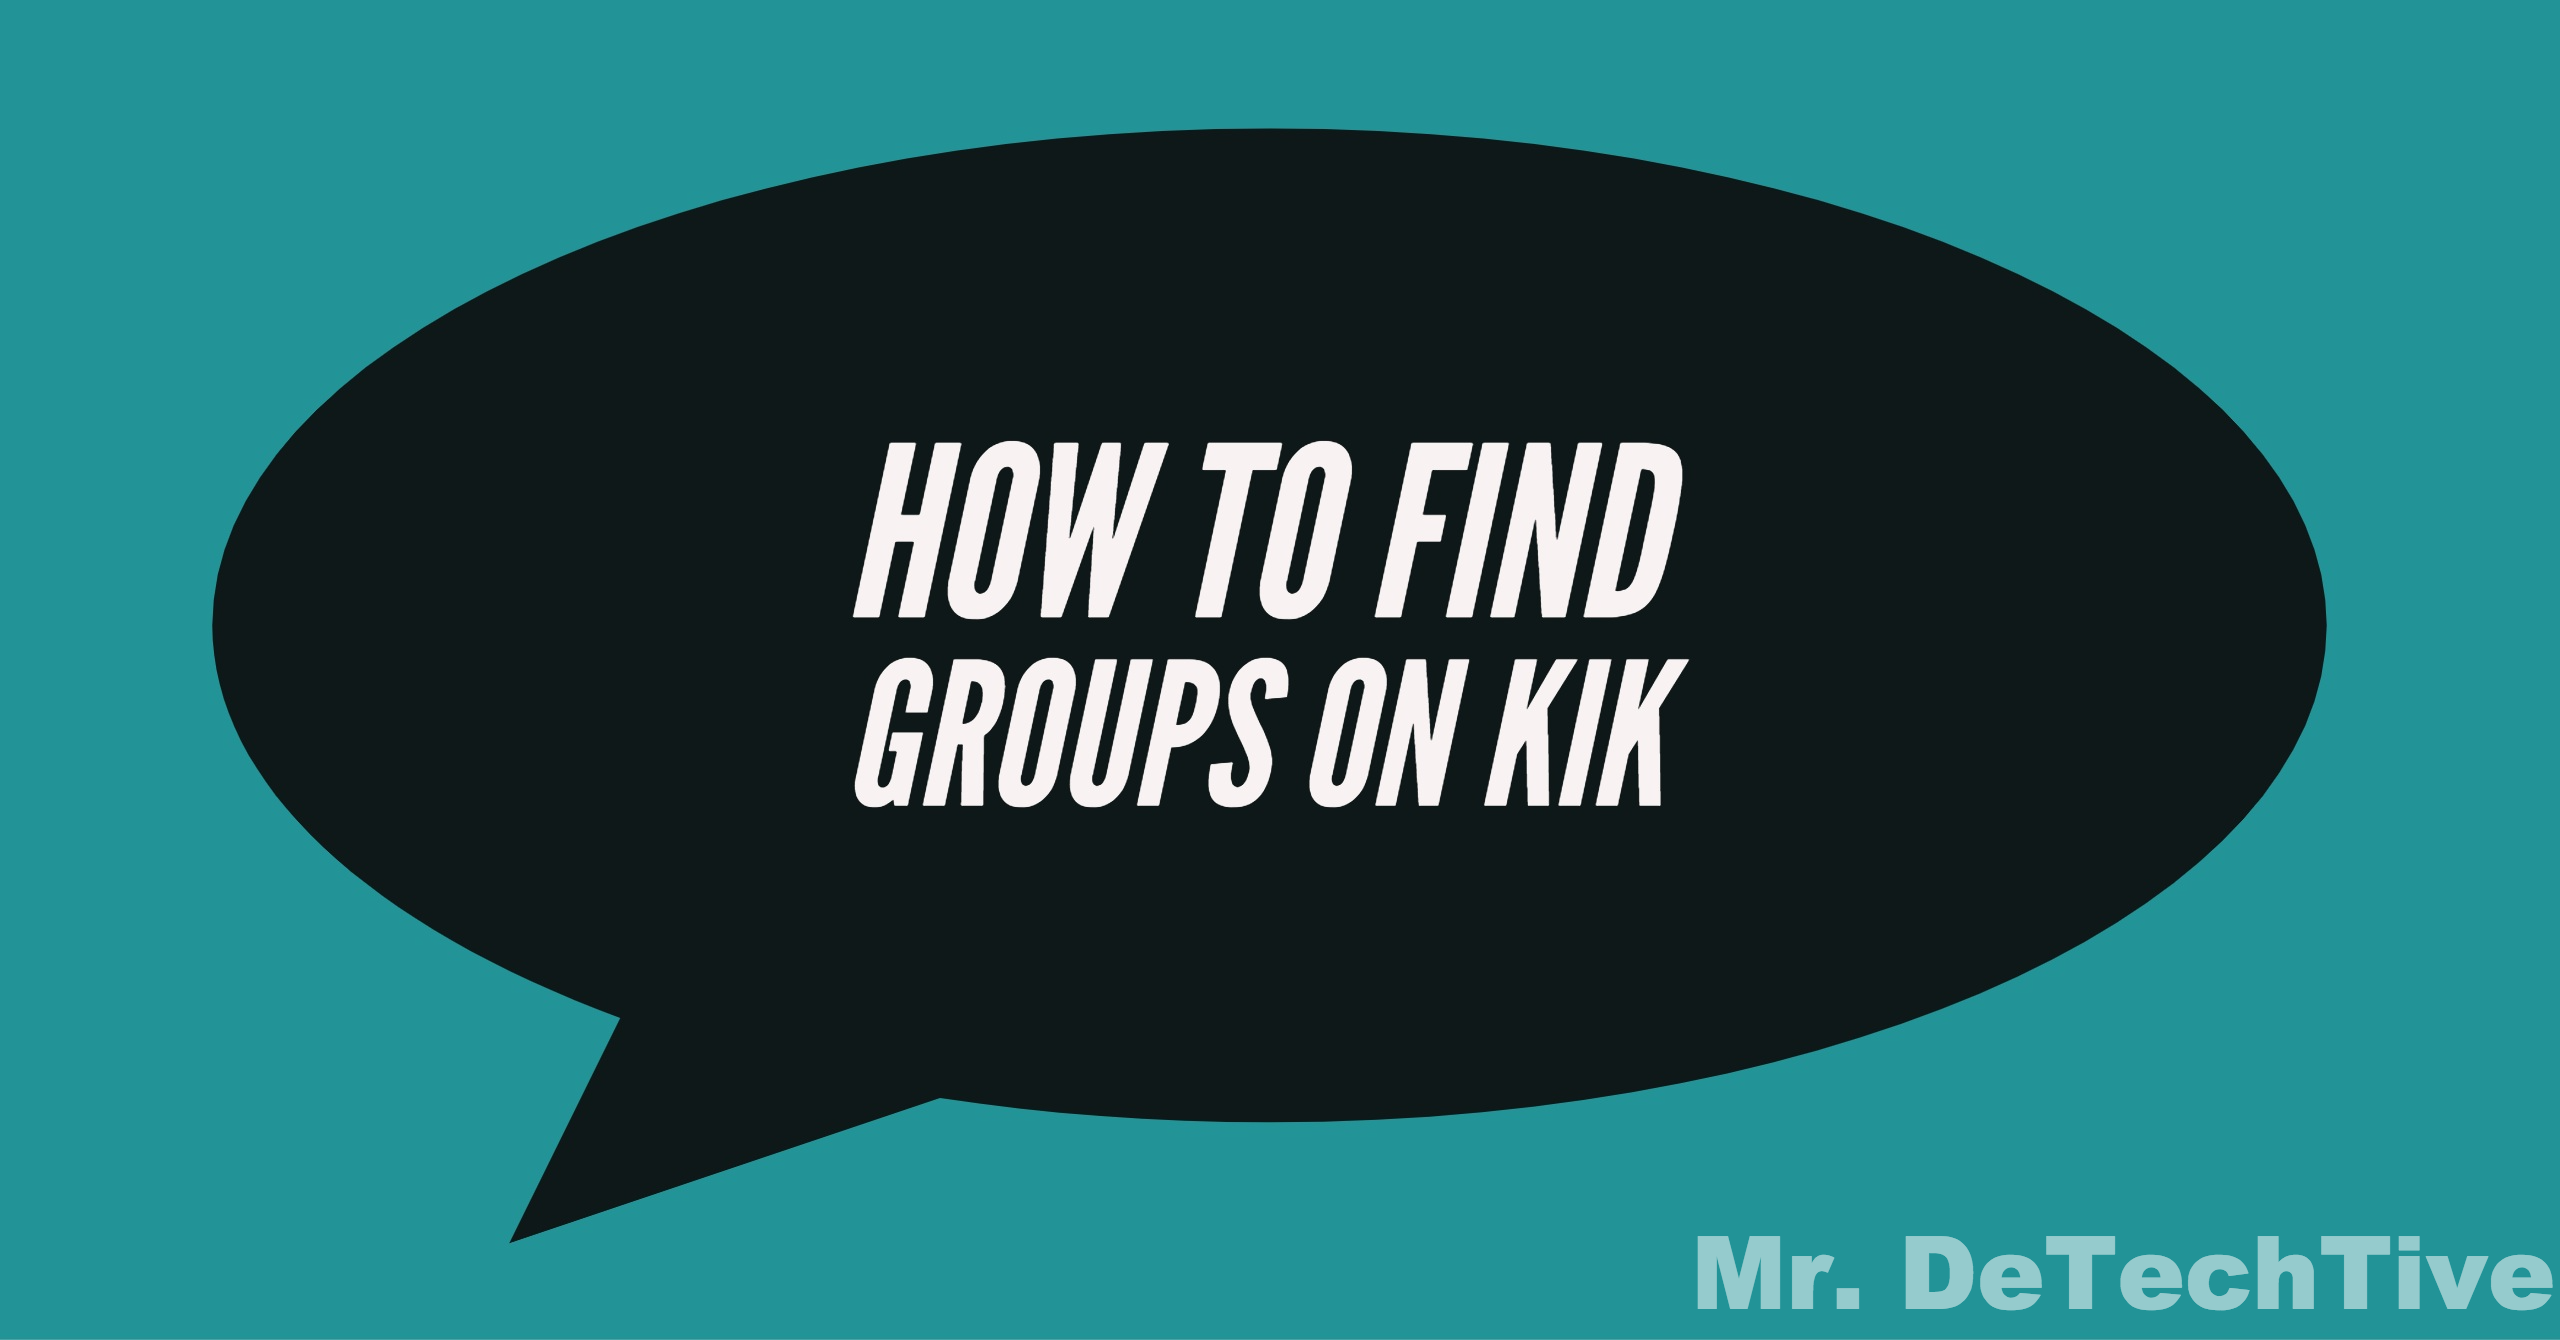 How to search for kik groups